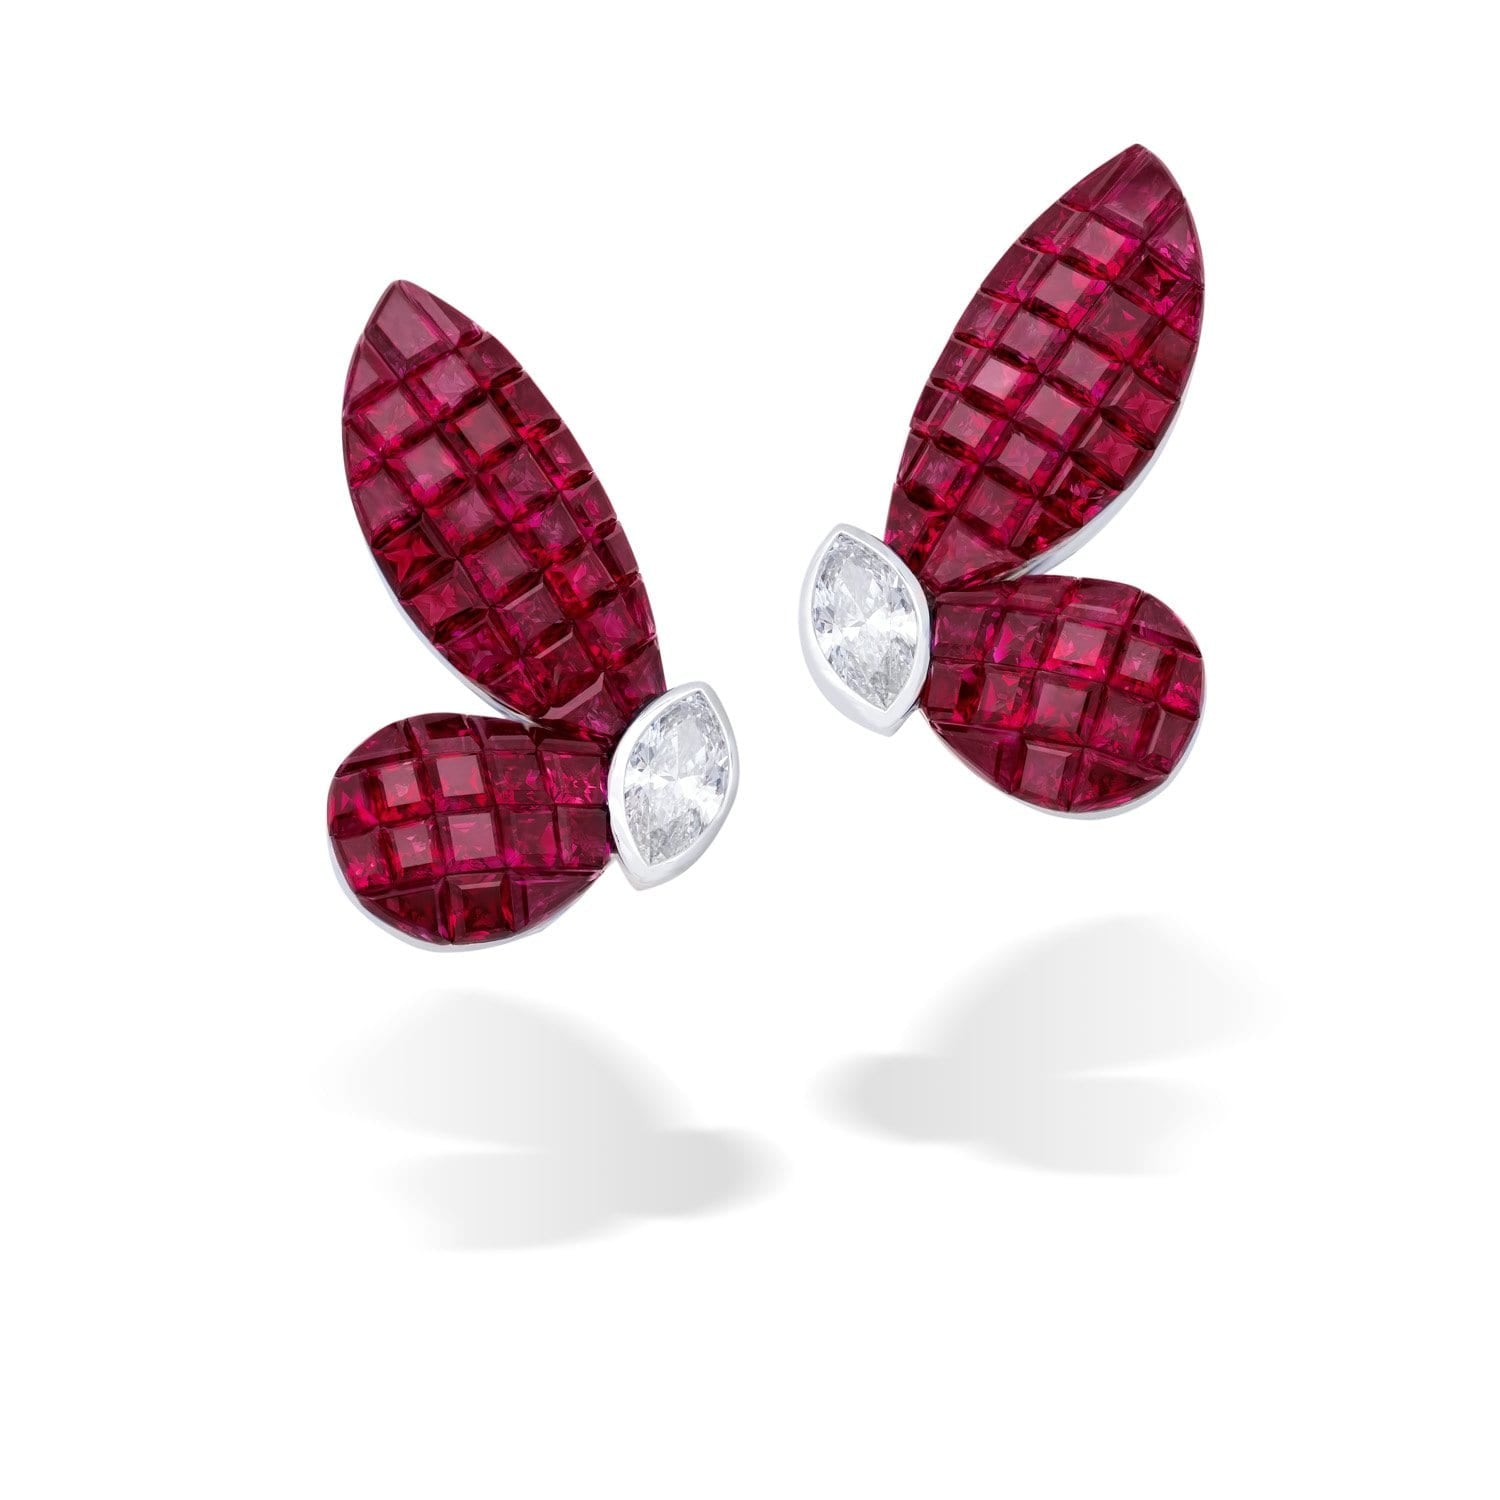 MADEMOISELLE B., MADAME Earrings - STENZHORN JEWELLERY